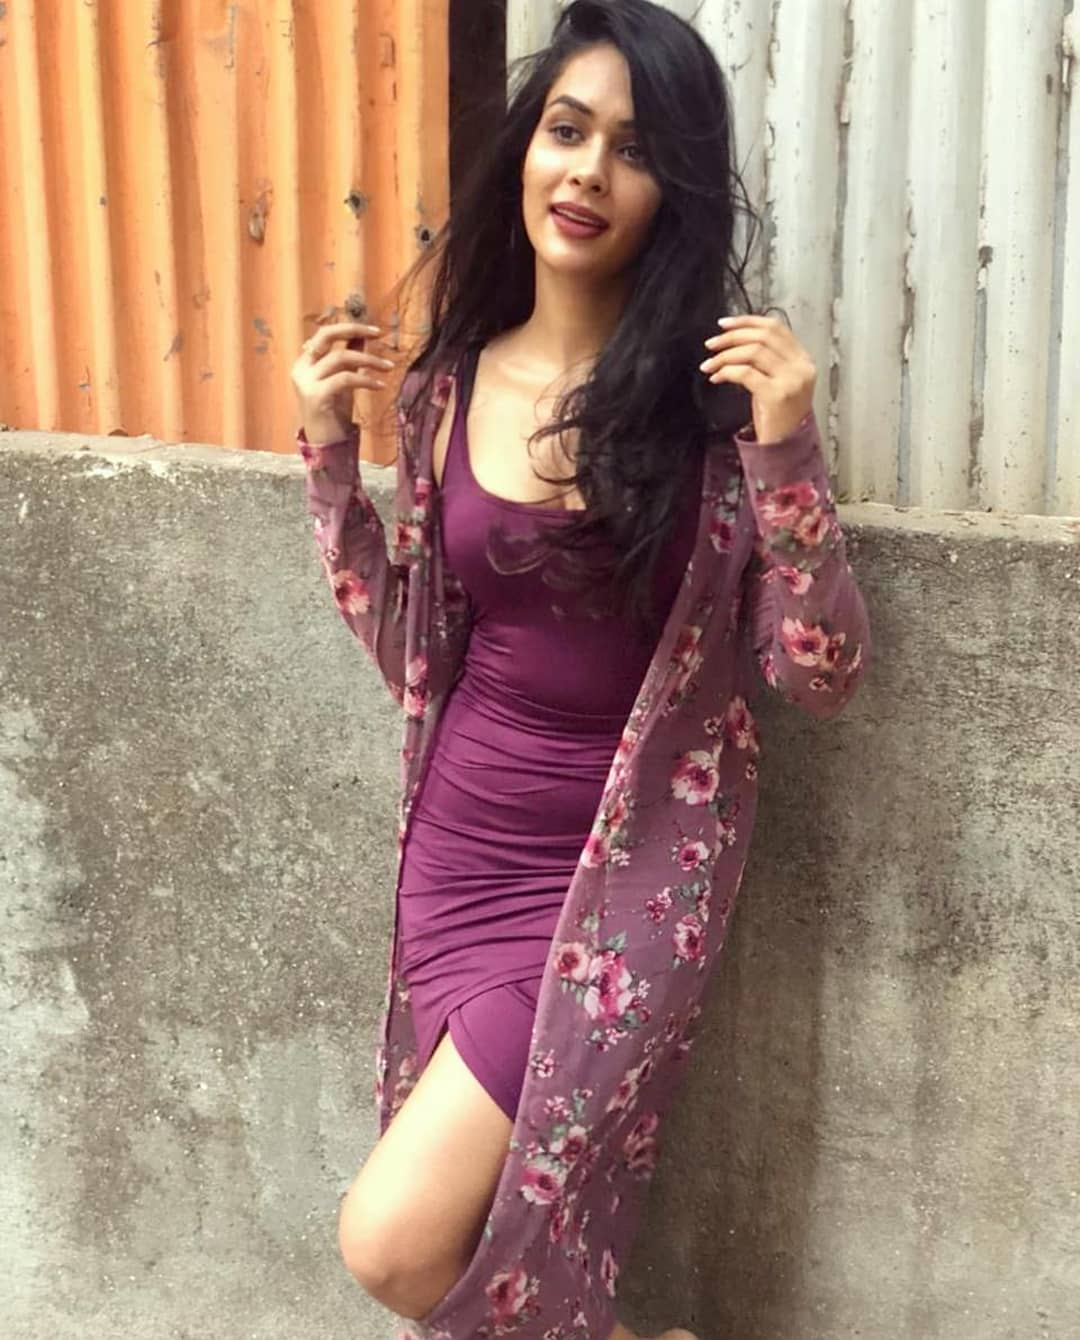 charvi-saraf-and-mohit-chauhan-love-story